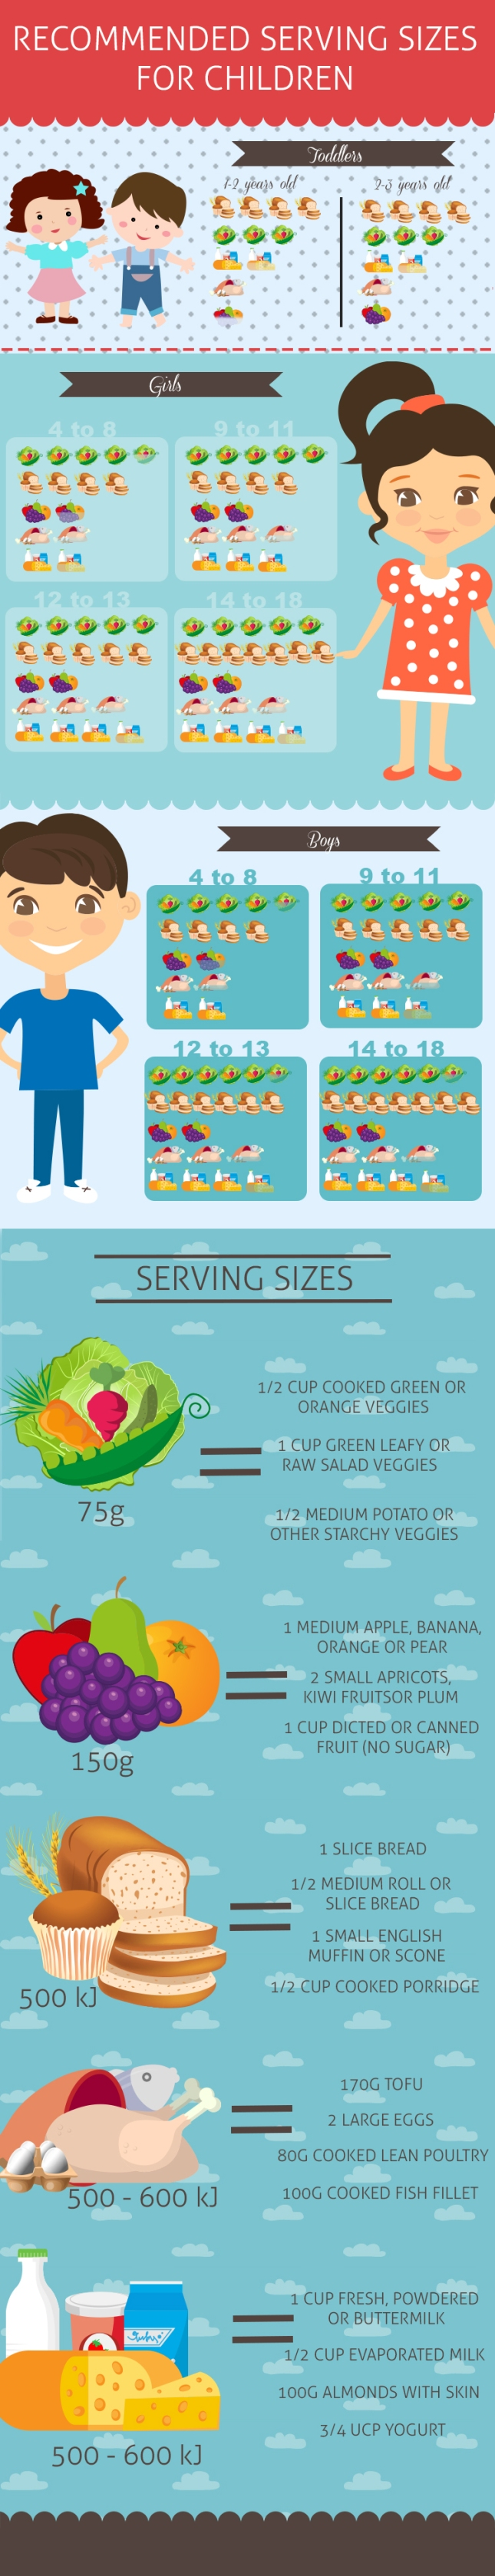 Recommended serving sizes for Children